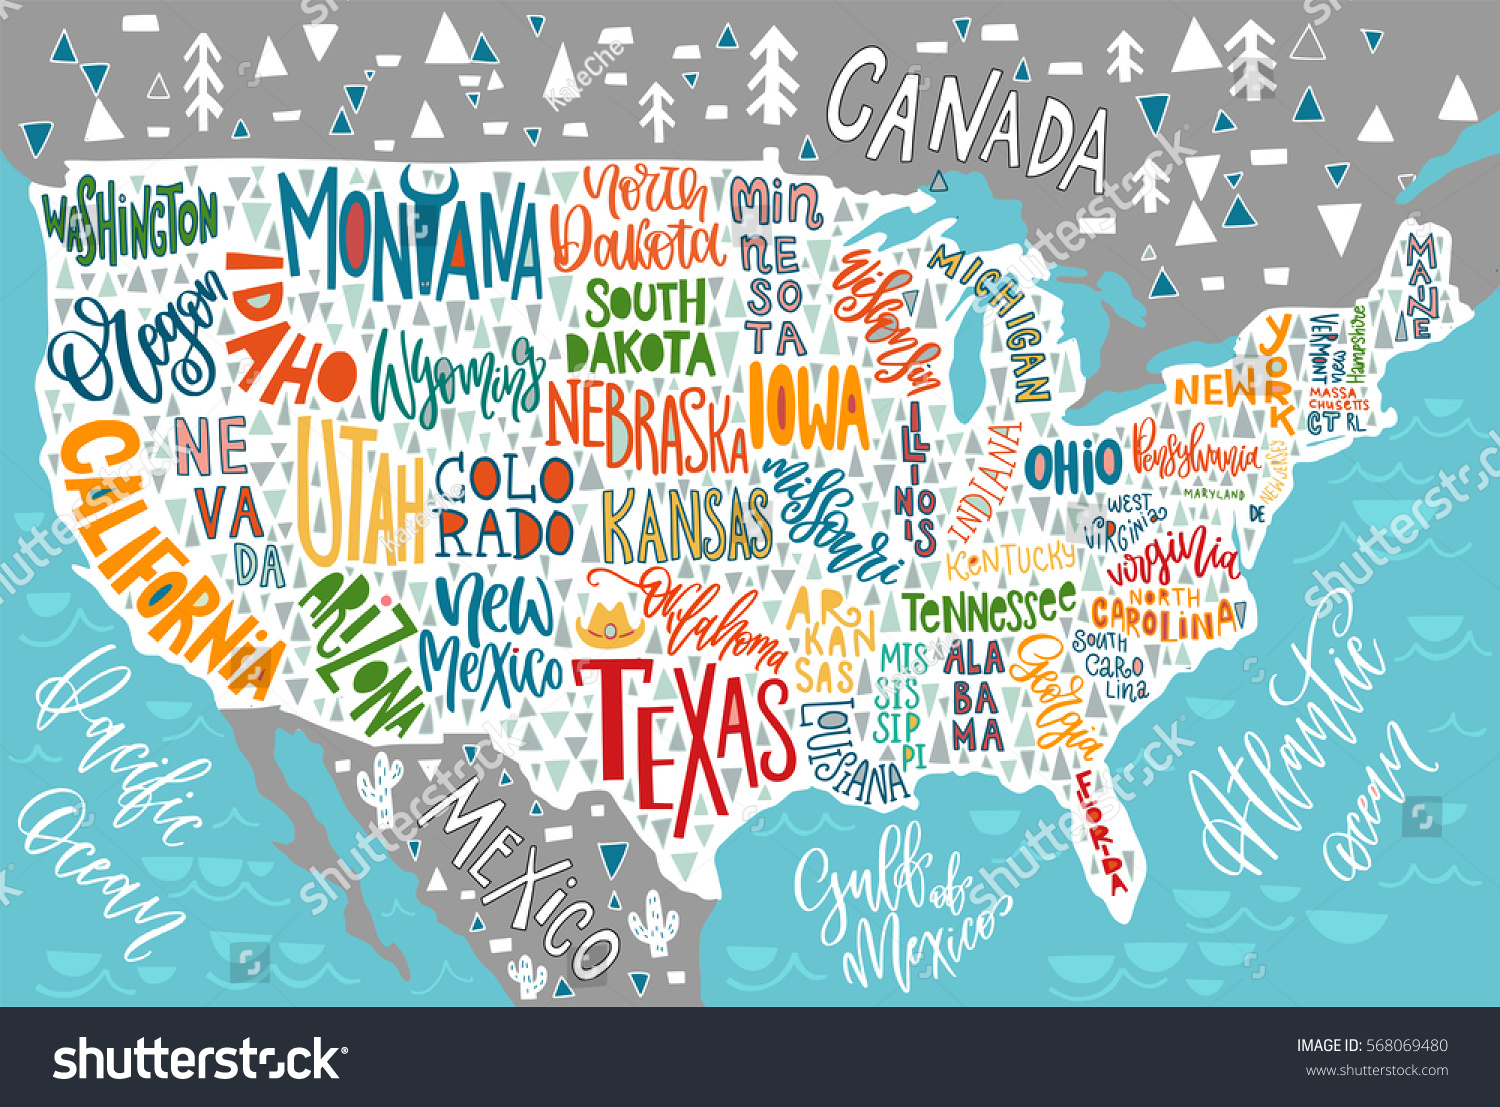 Usa Map States Pictorial Geographical Poster Stock Vector - Poster map of usa